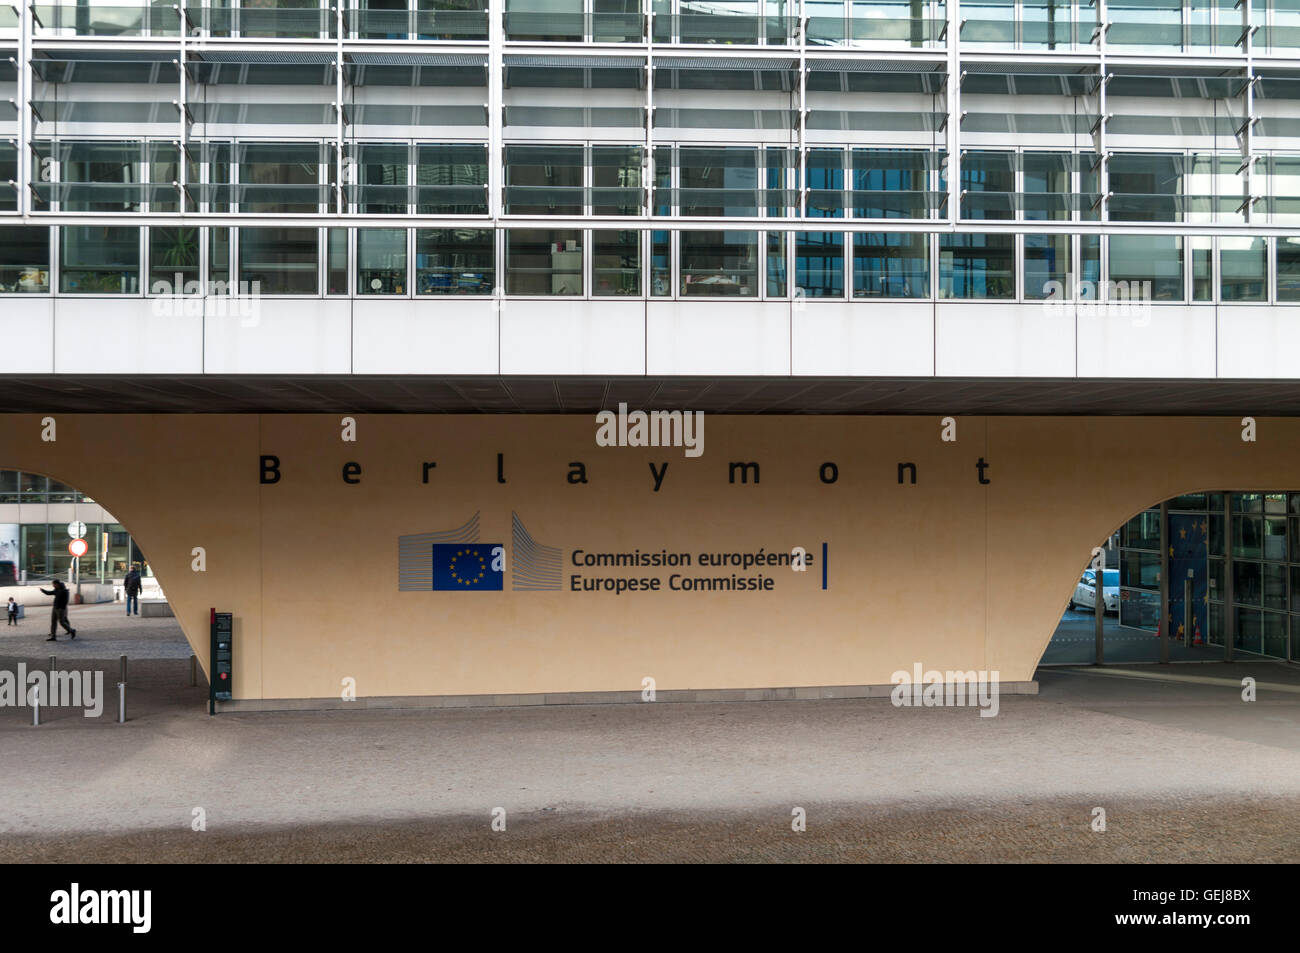 Logo of the European Commission on Berlaymont building, Brussels, Belgium. - Stock Image